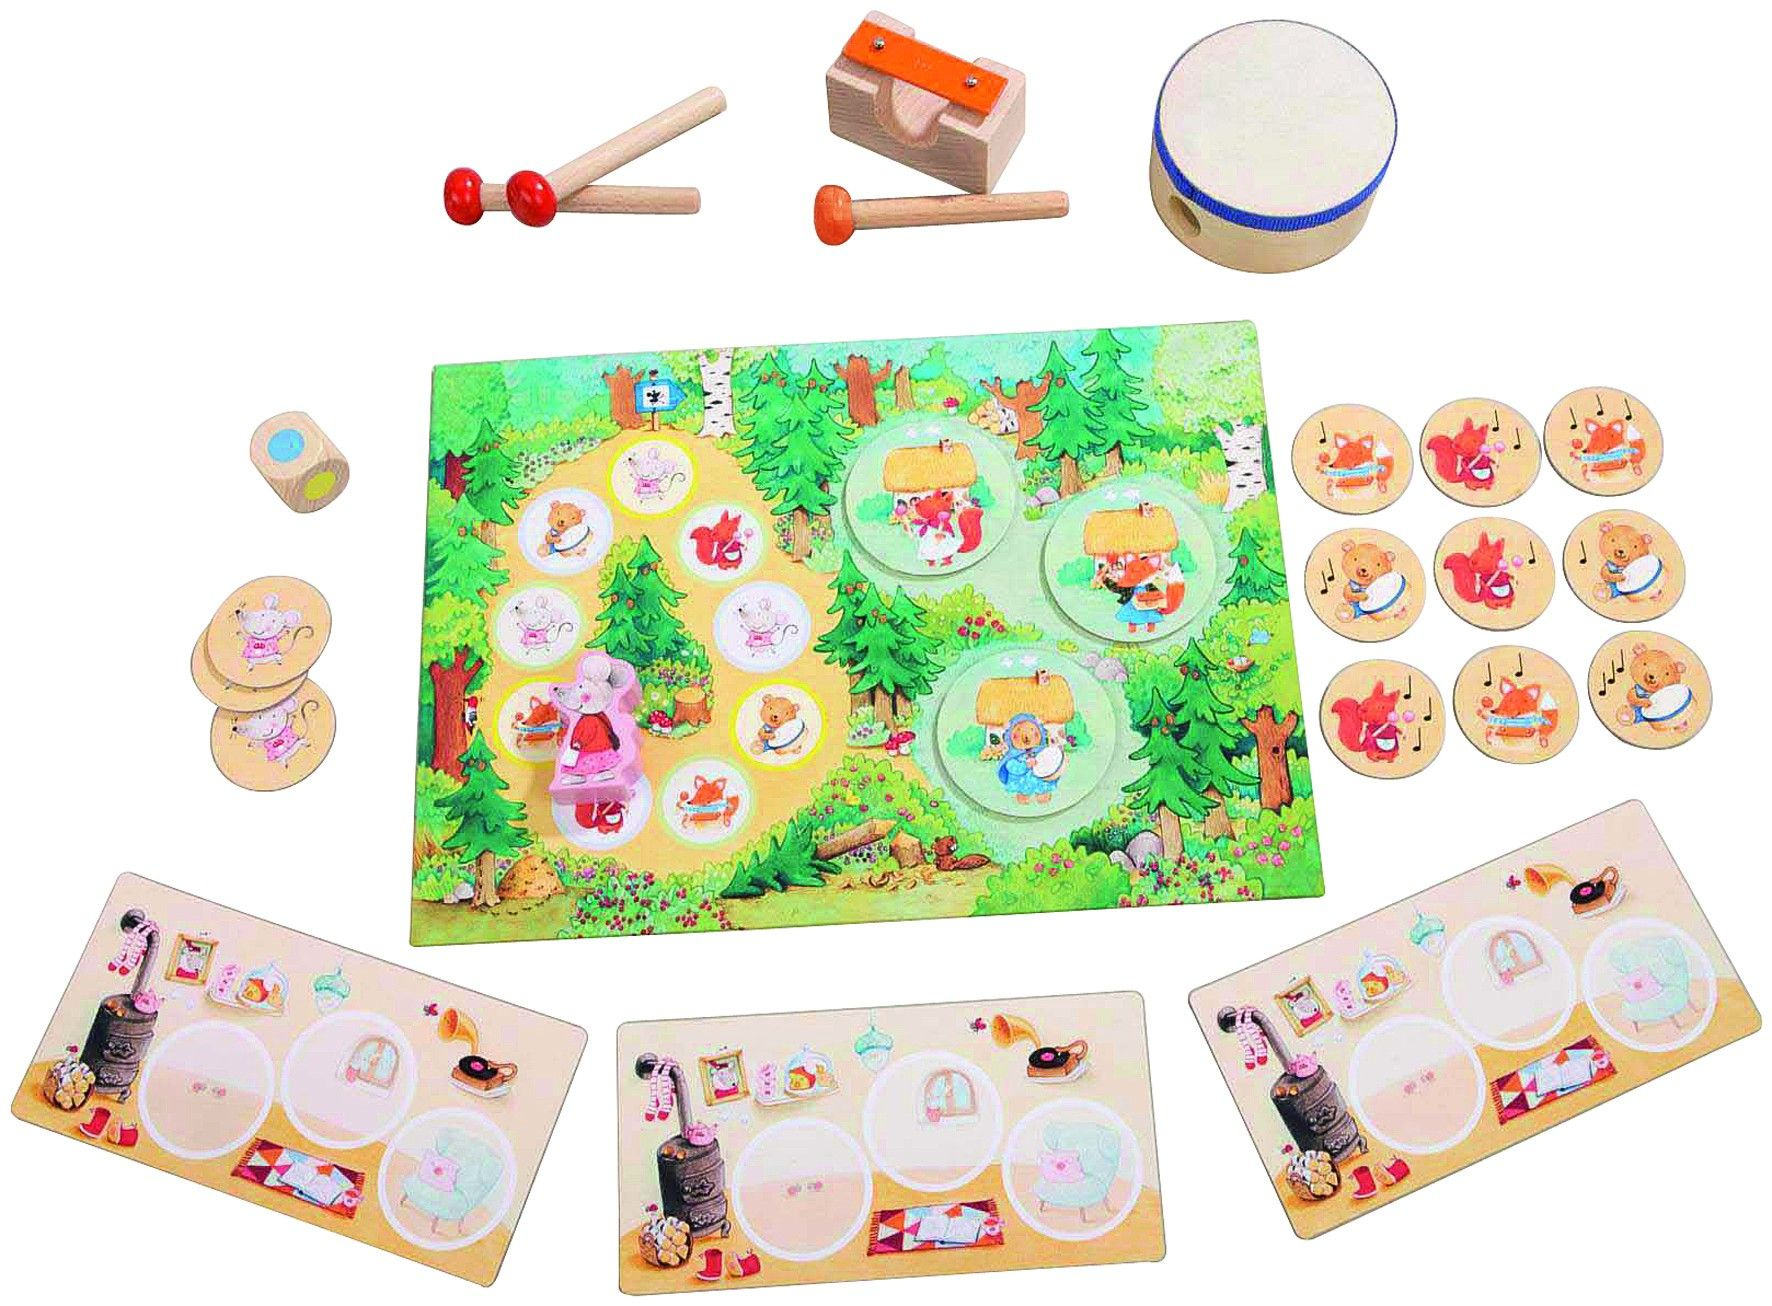 Haba Toys My Very First Games Ding Dong Forest Musical Board